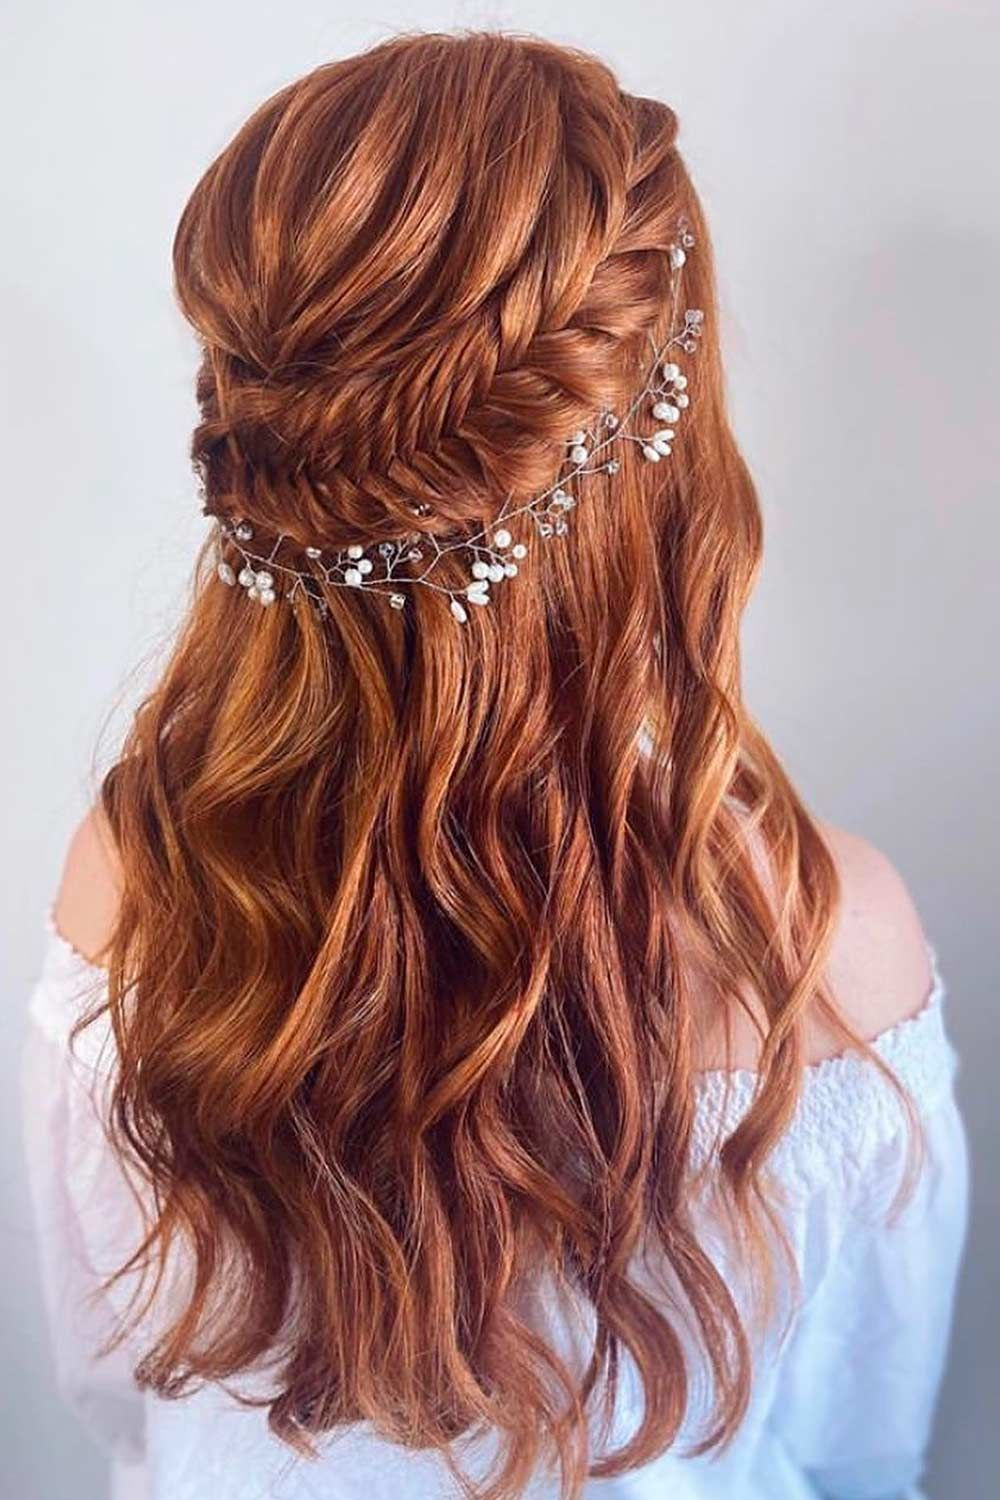 Half Up with Braid For Formal Hair